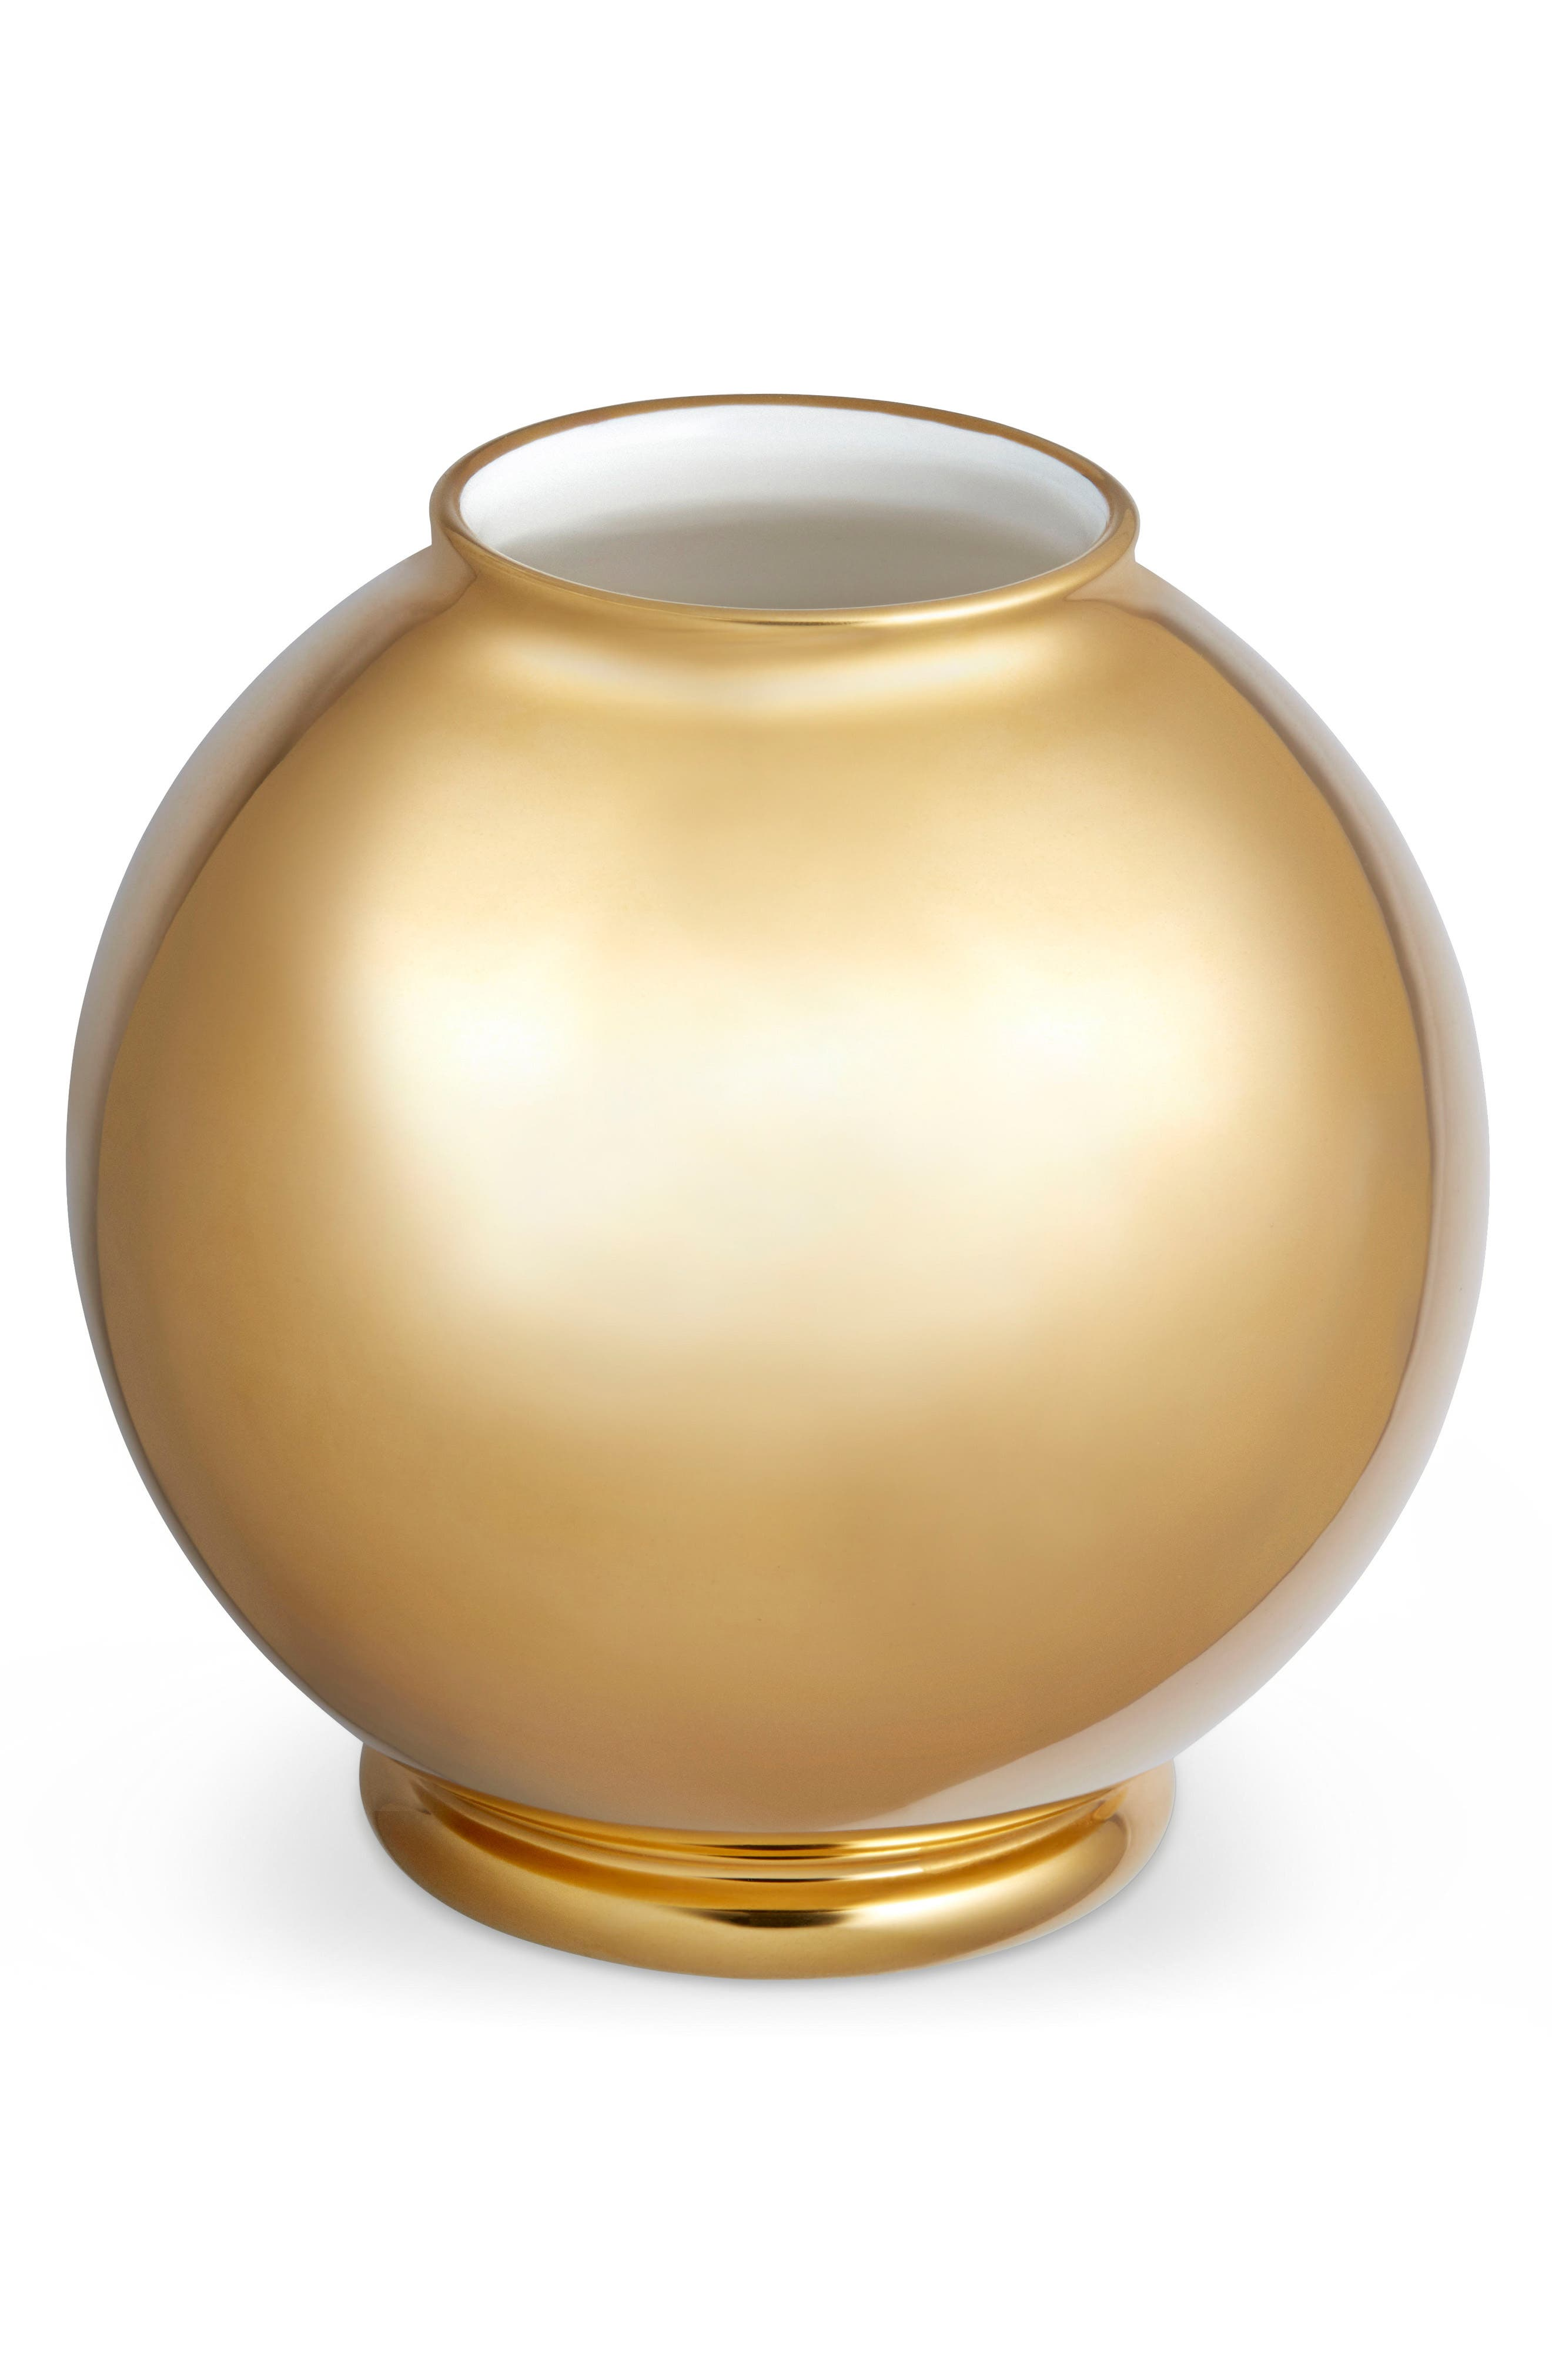 Marion Gilded Round Vase,                             Main thumbnail 1, color,                             710